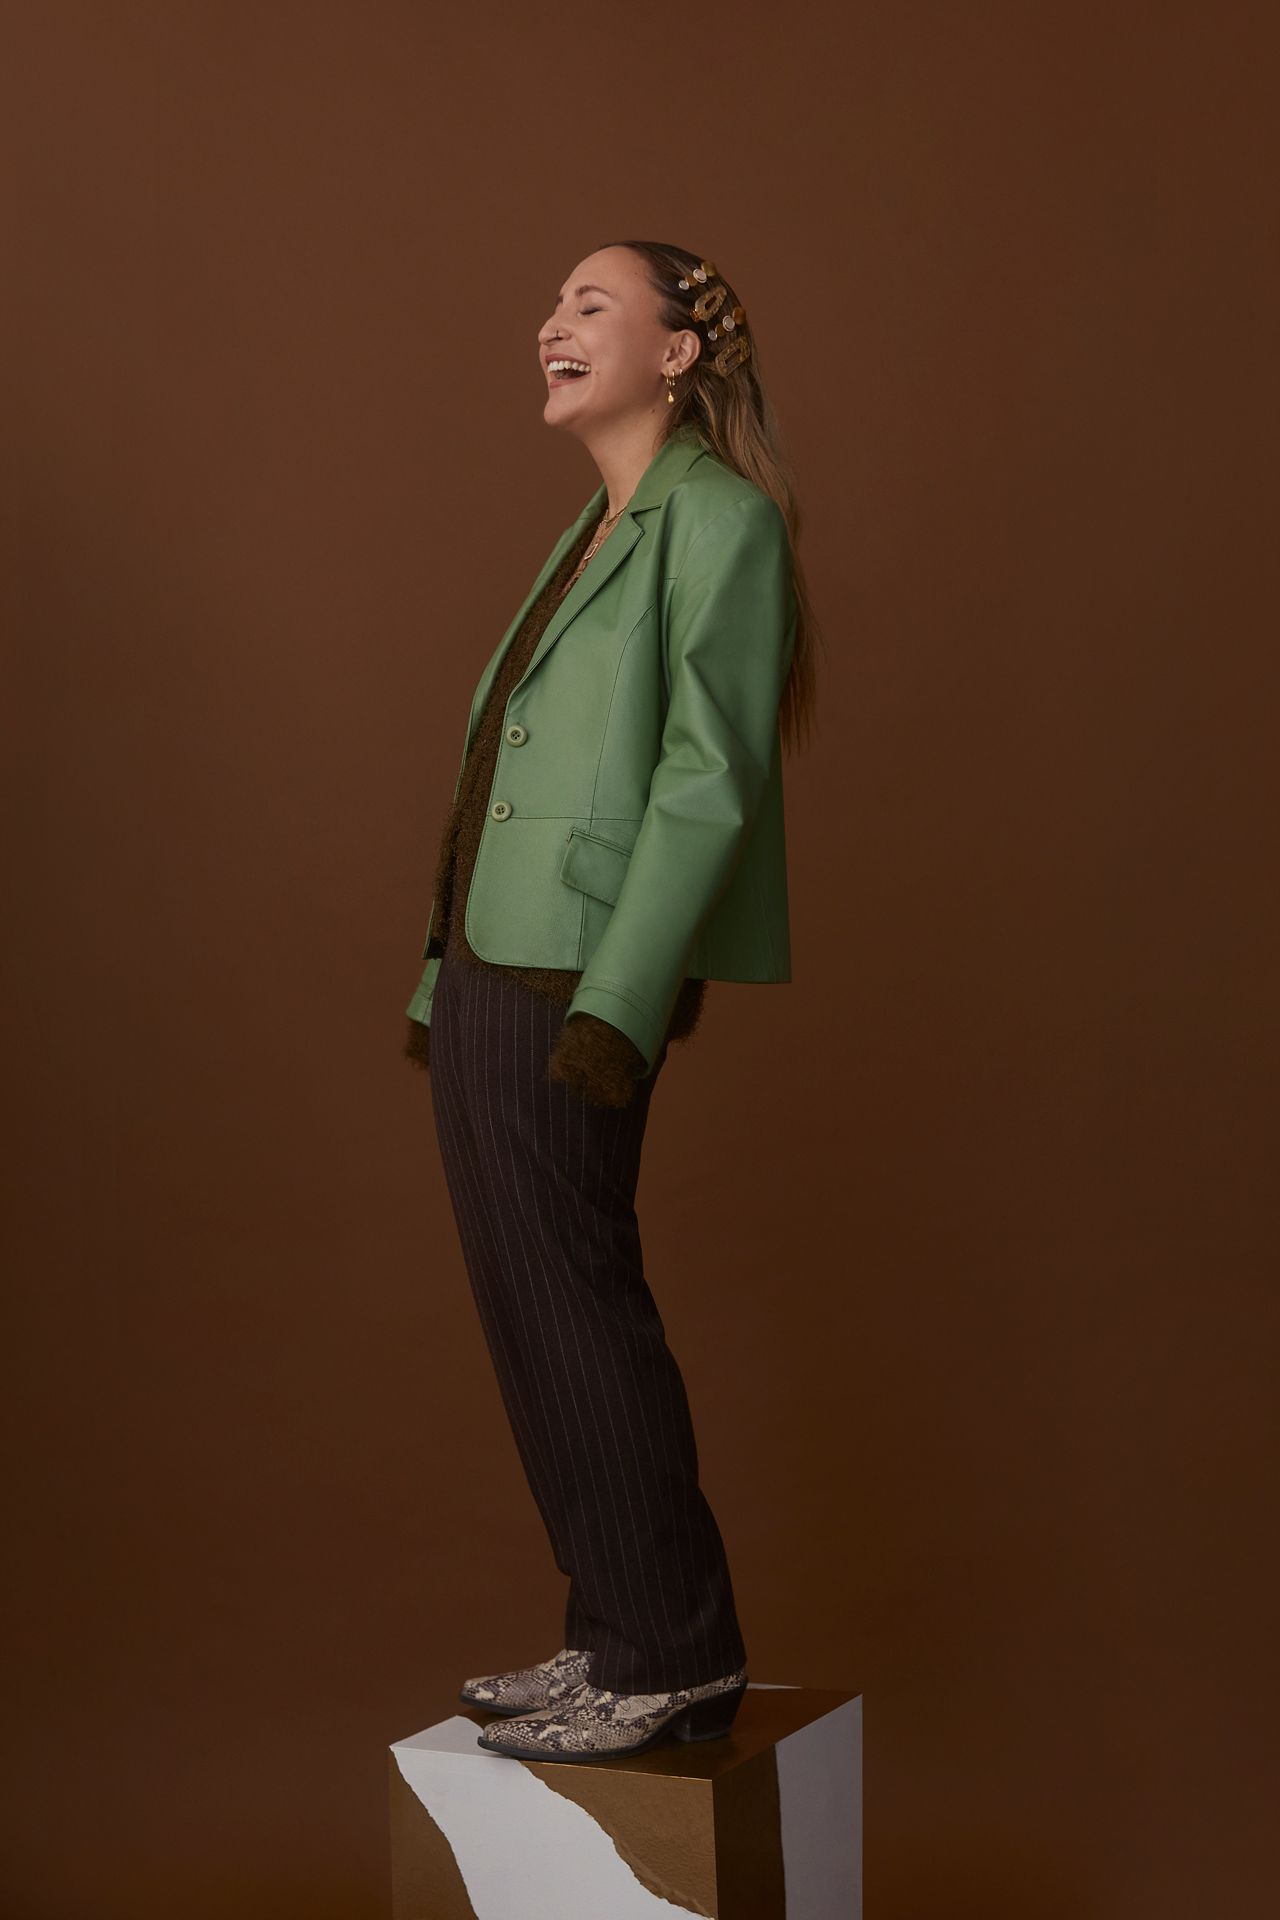 female model standing on block lightly leaning back and laughing wearing bright green leather jacket brown sweater fine-stripped black pants and snake skin shoes on brown background photographed by Kelly Jacob for LEV